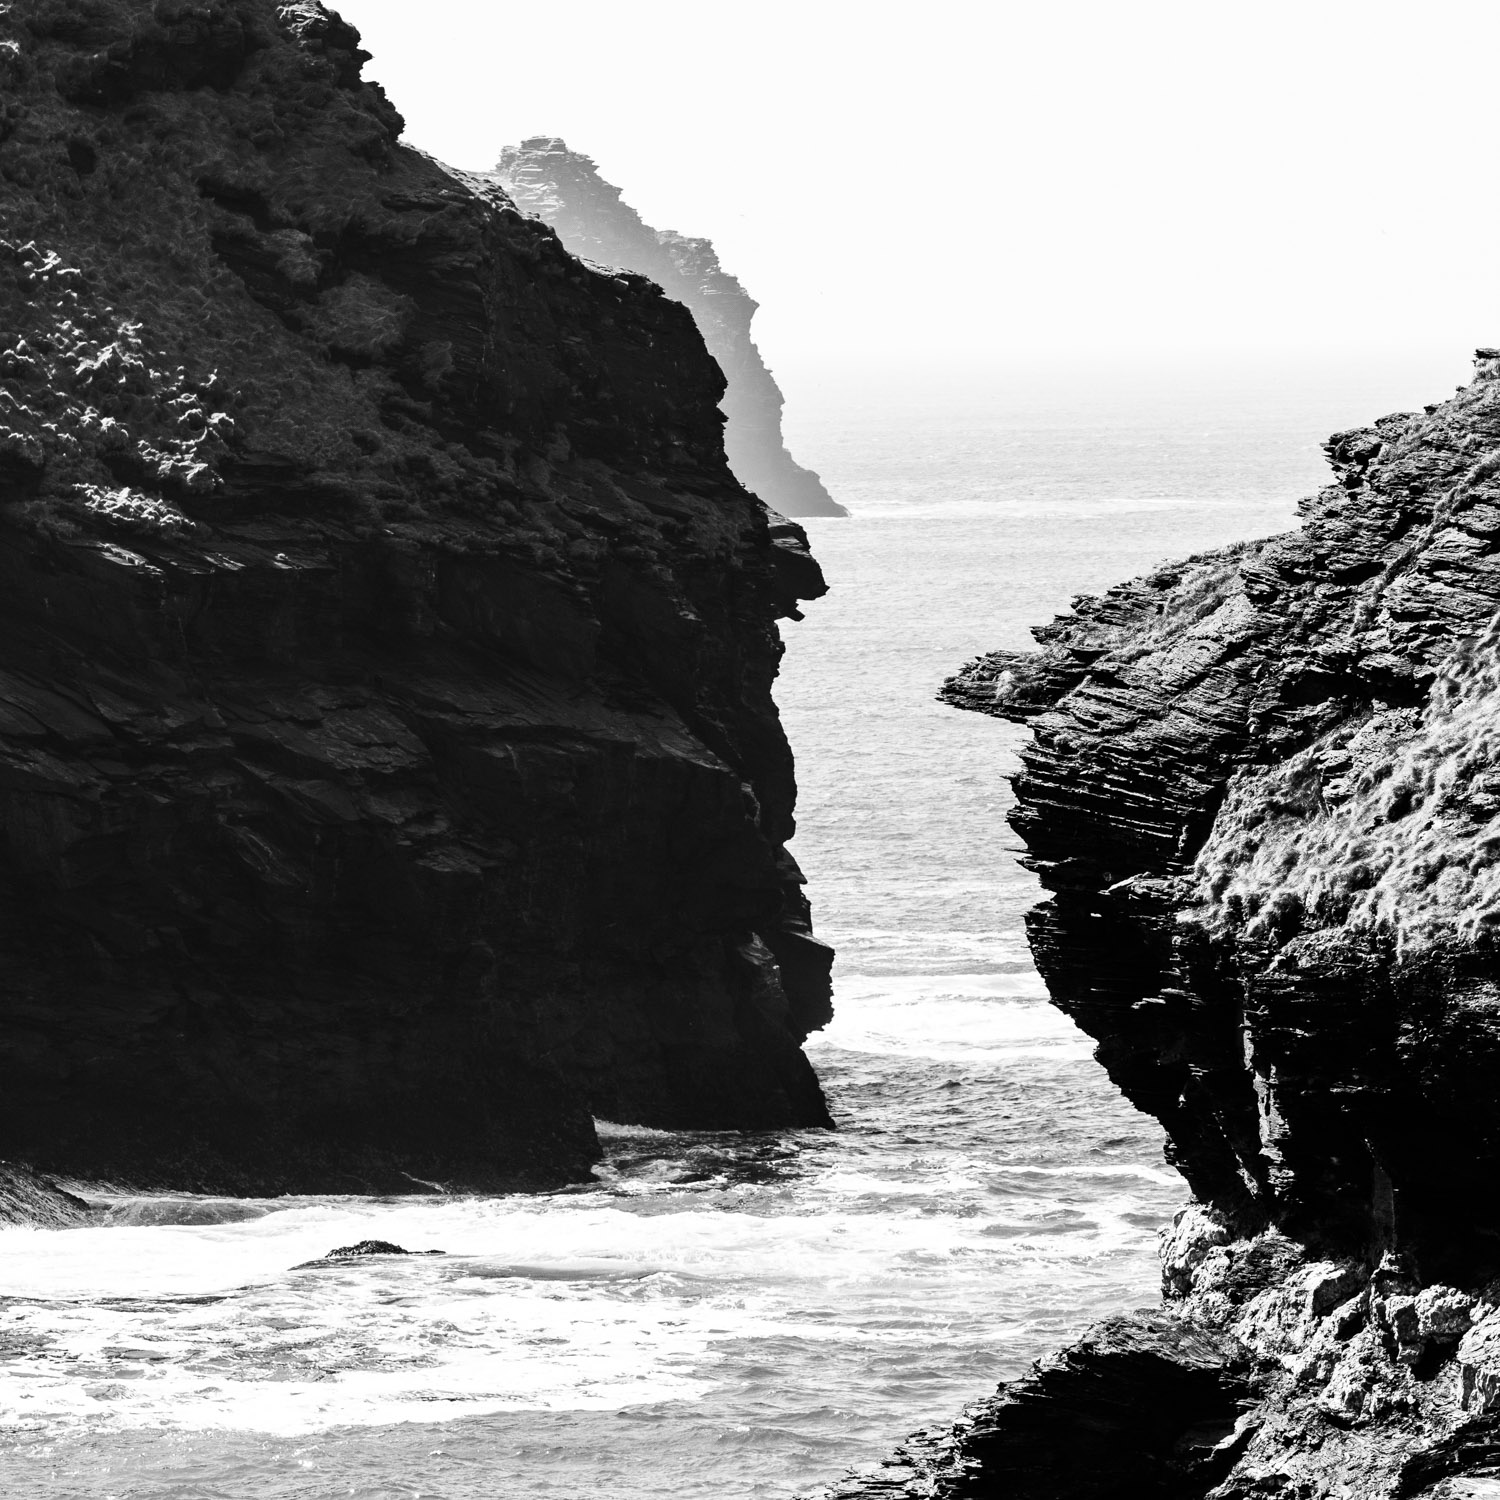 Boscastle B&W LR (4 of 4).jpg